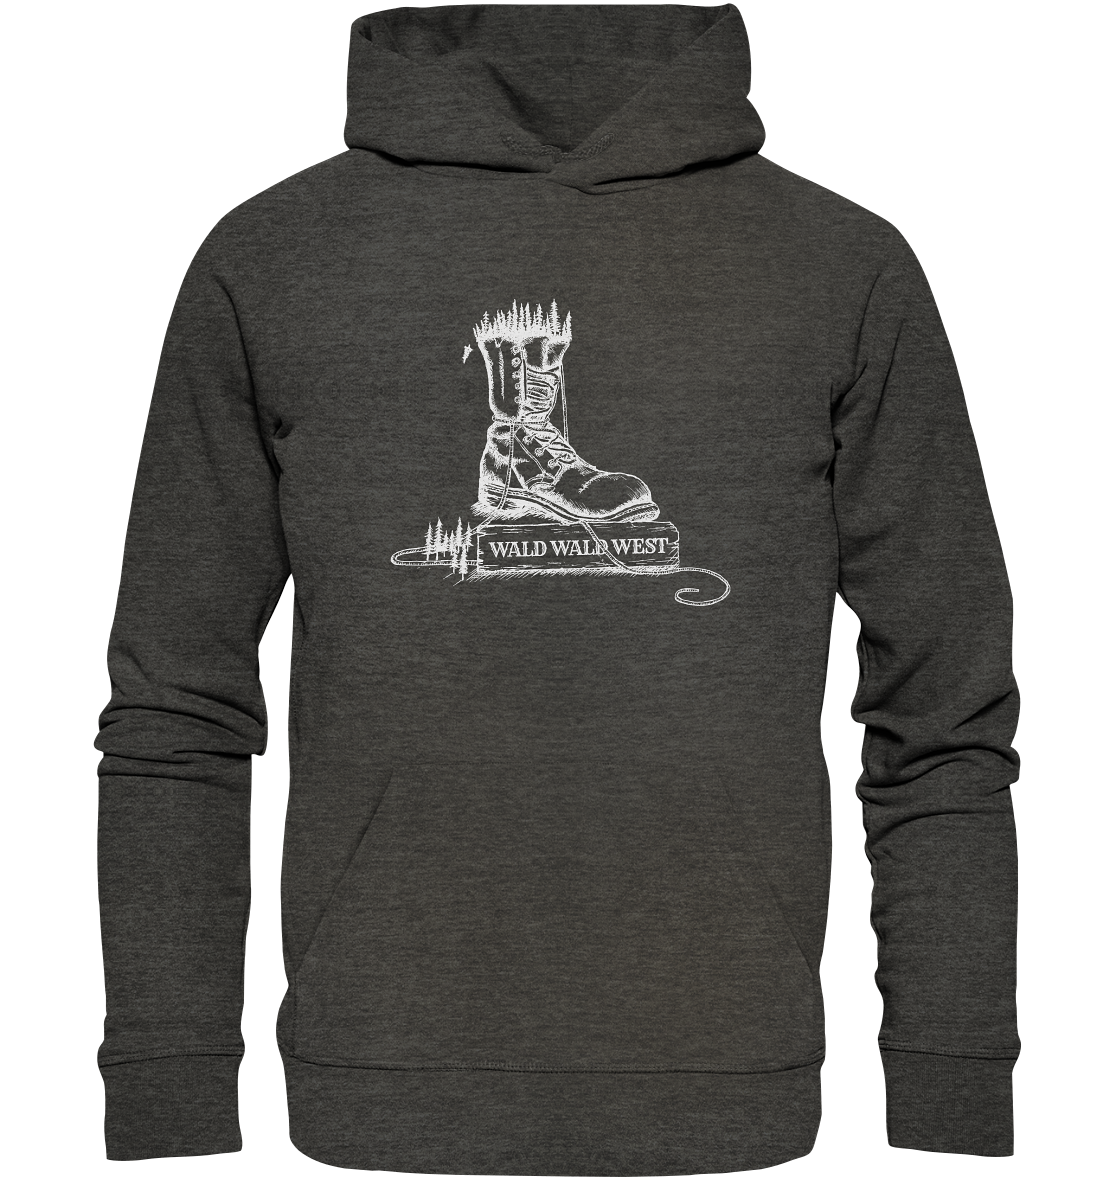 front-organic-hoodie-252625-1116x.png